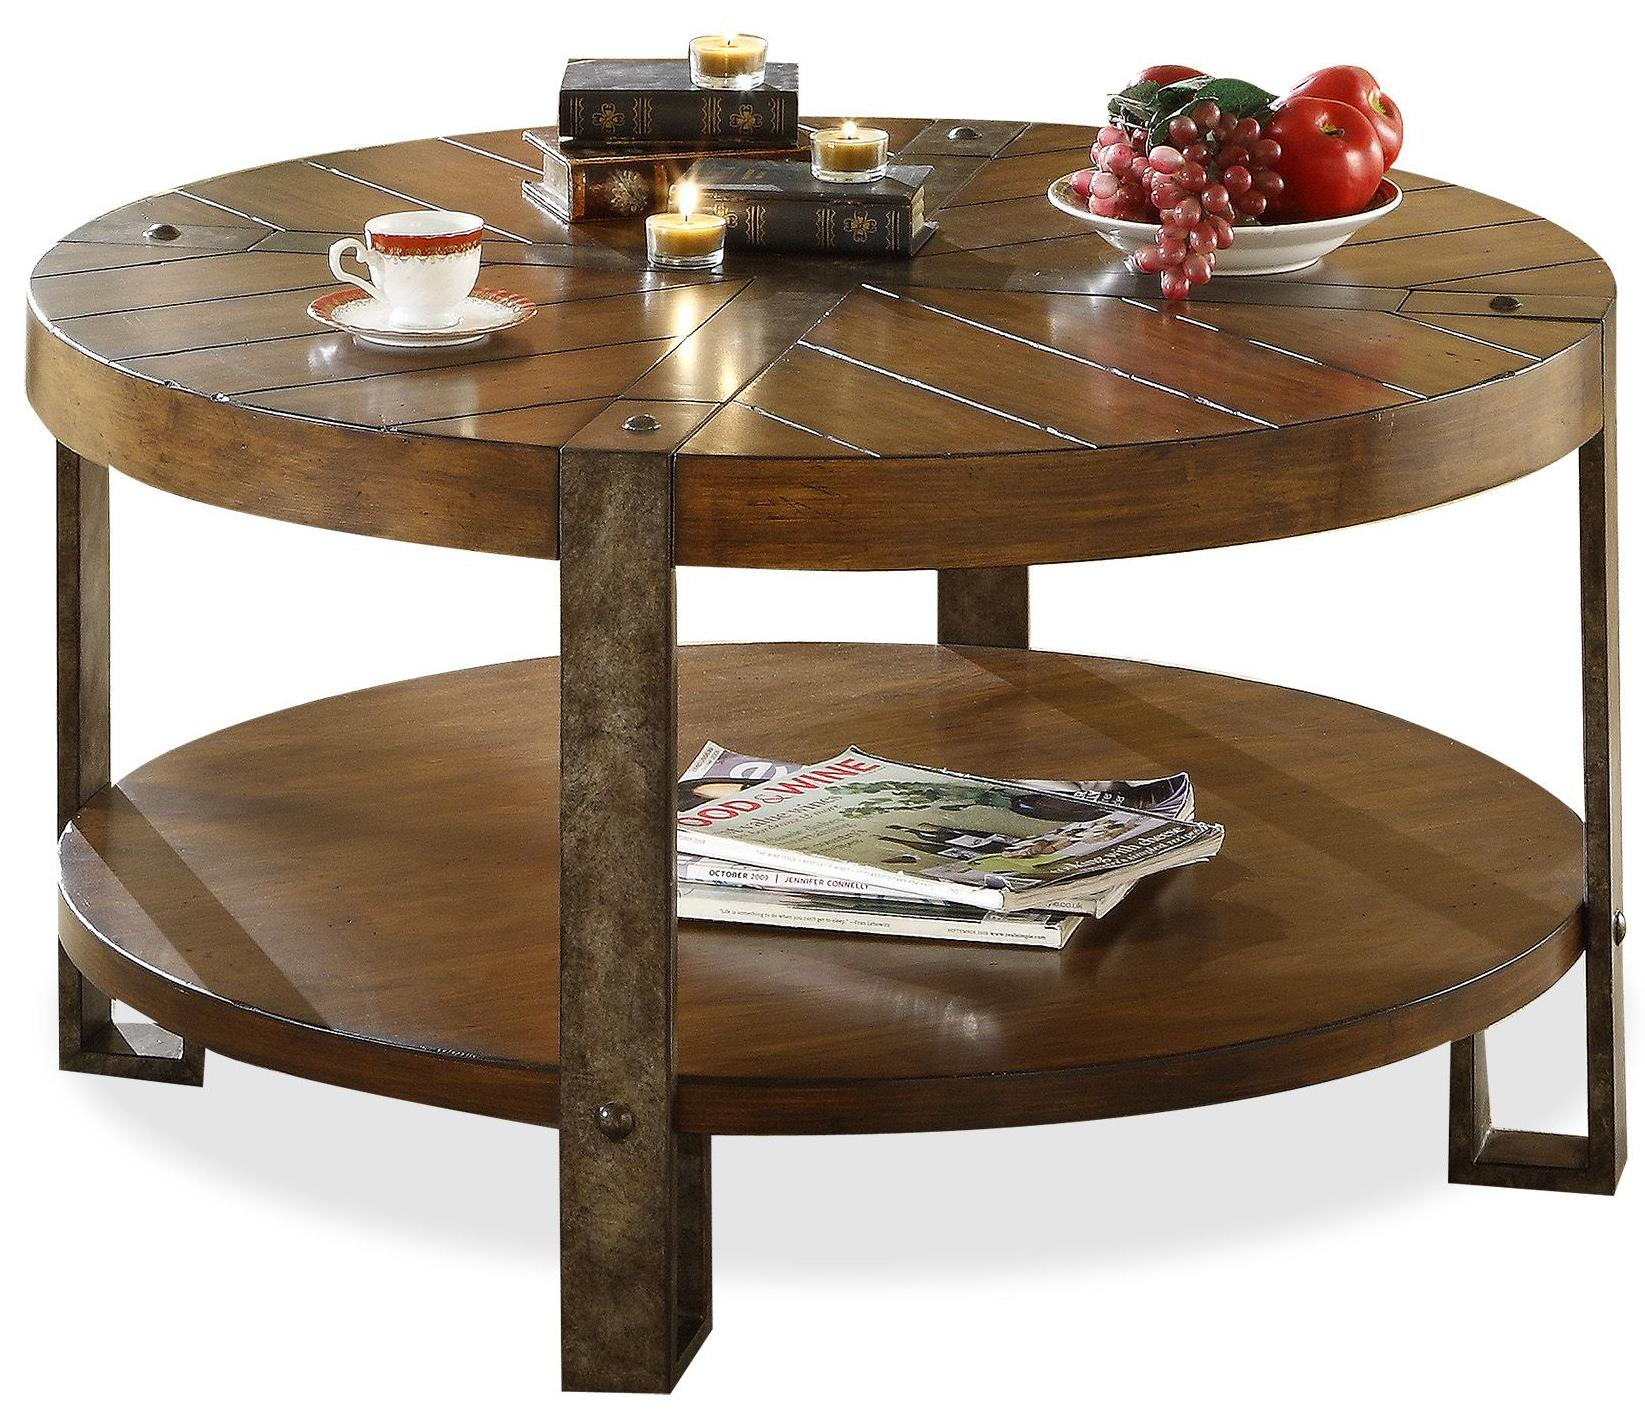 Riverside Furniture Sierra Round Wooden Coffee Table With Metal Legs Value City Furniture